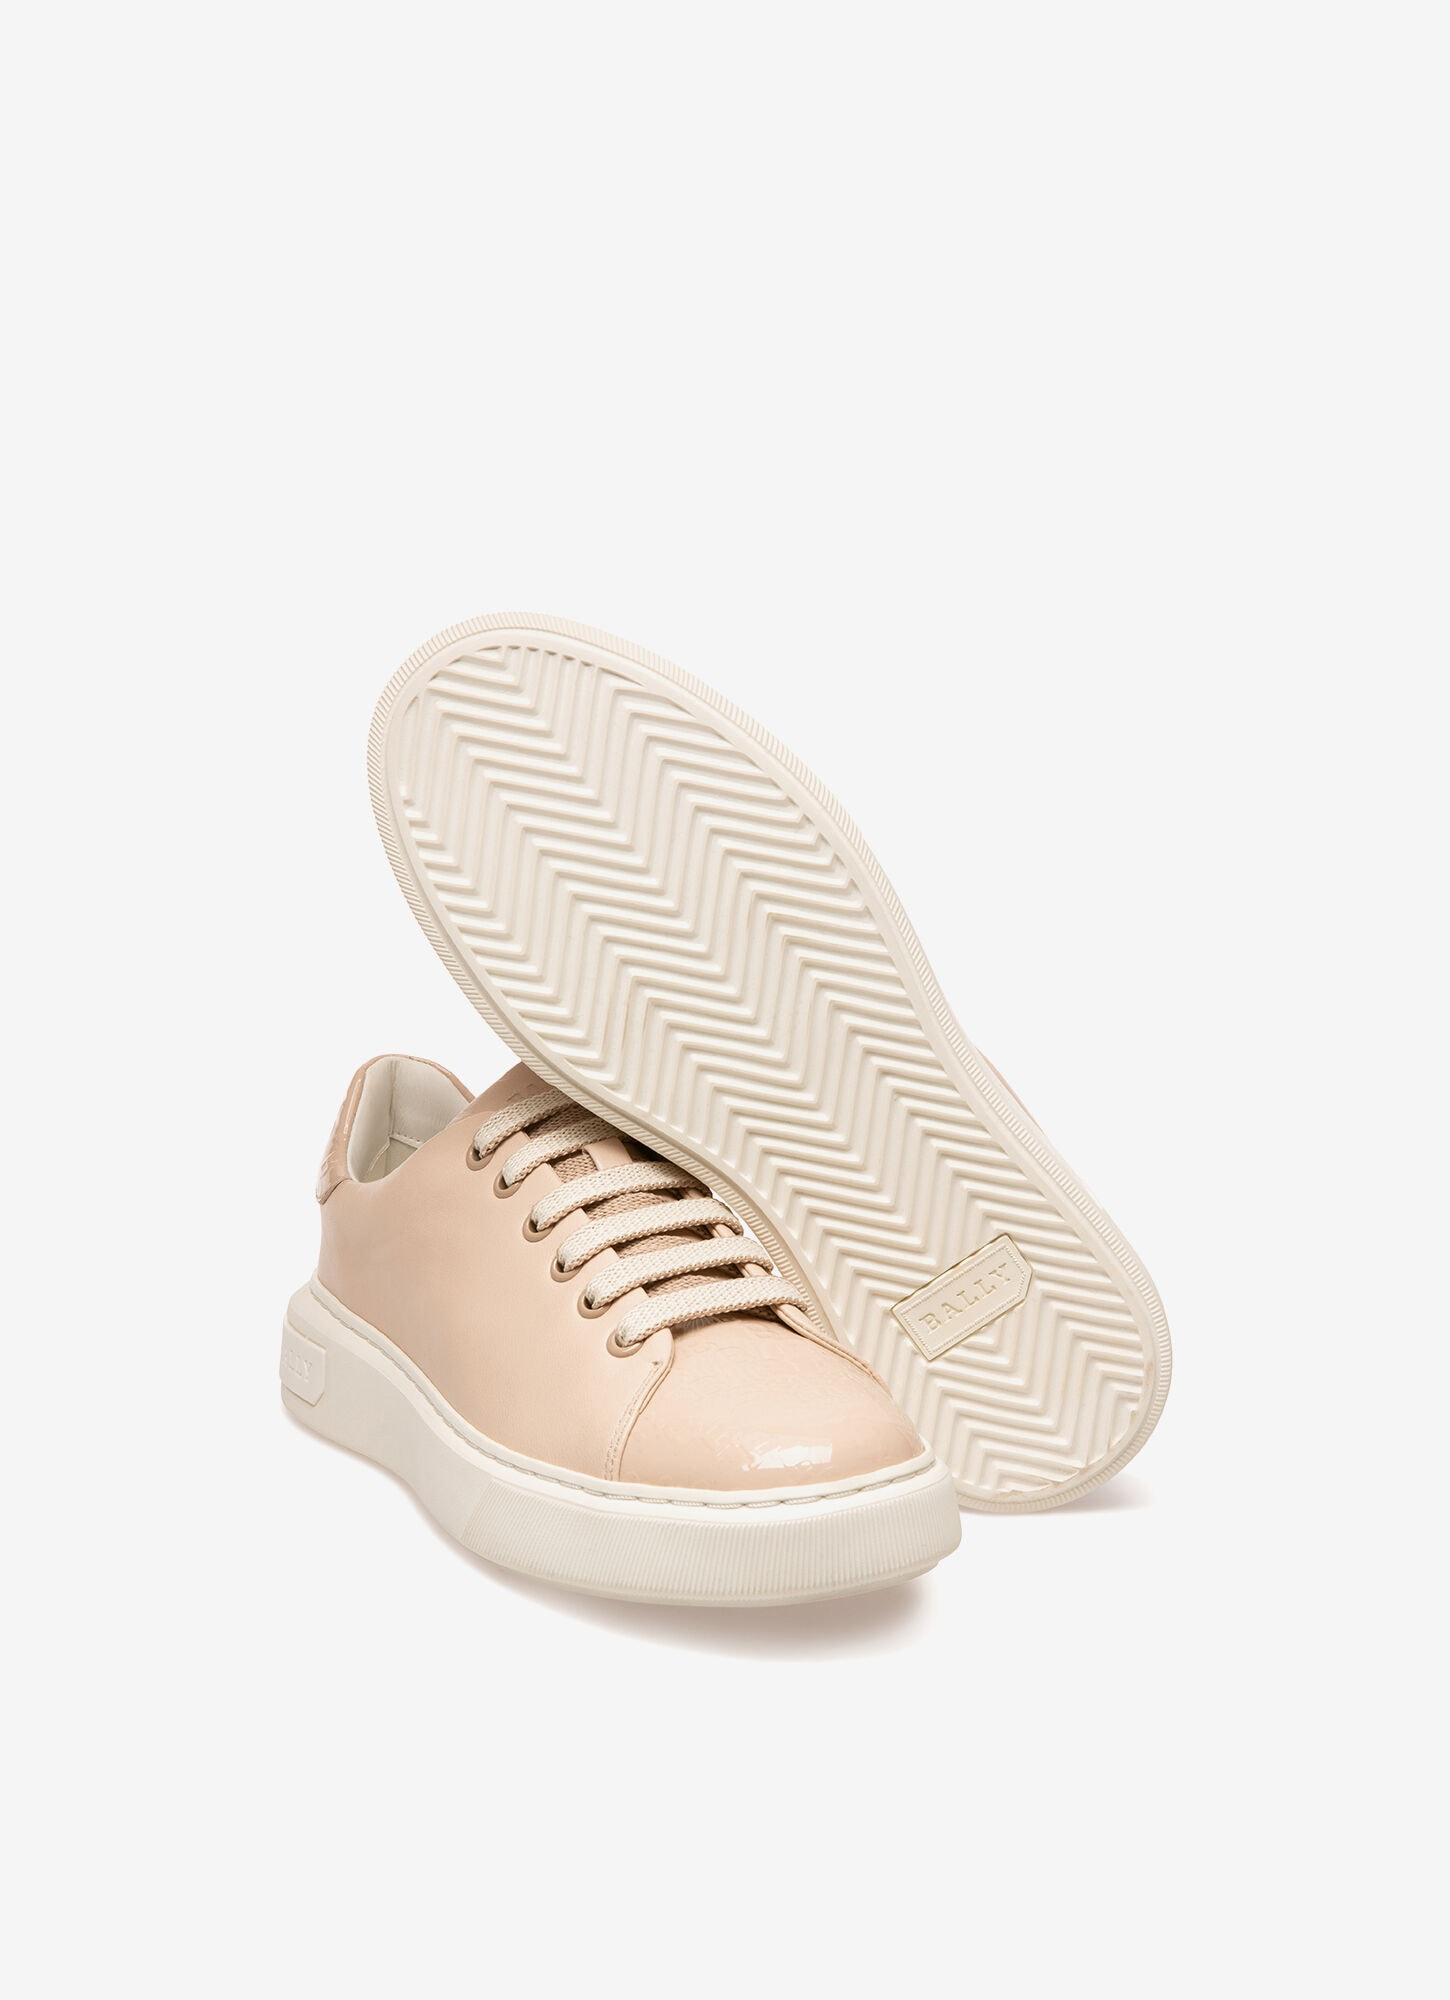 Marlys  Womens Sneakers   Pink Leather